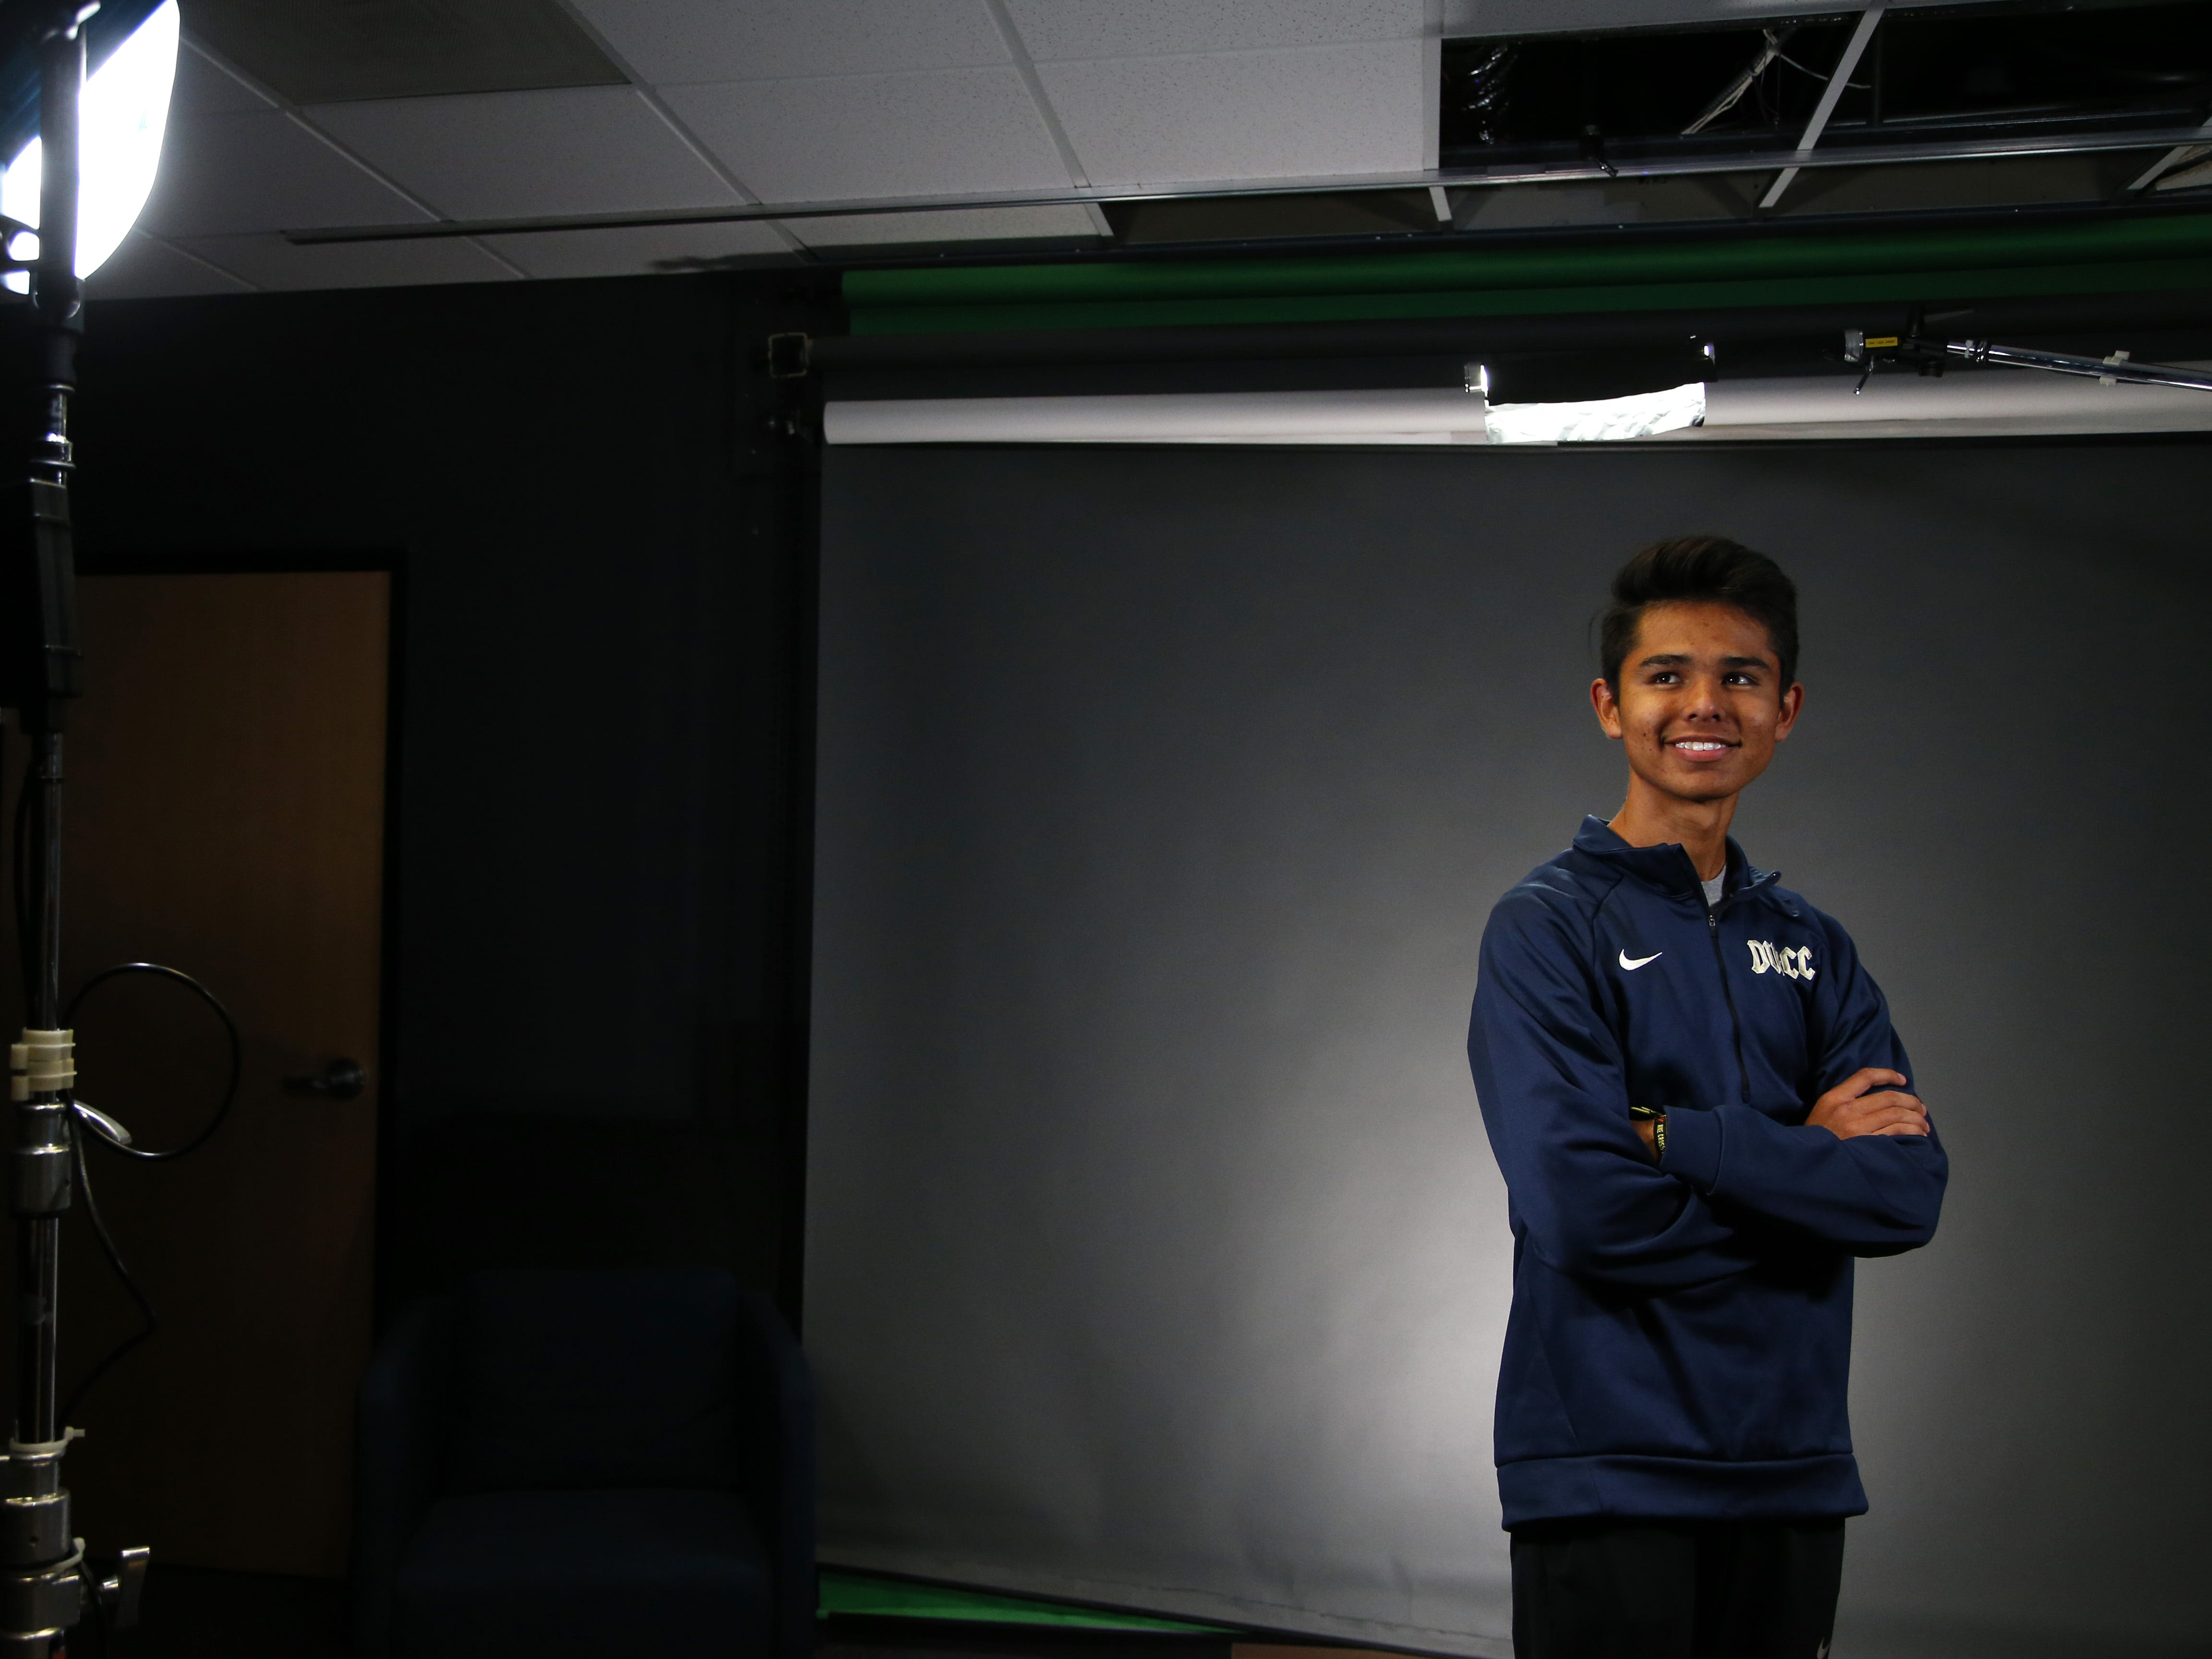 Desert Vista Lee Nasewytewa North Phoenix Prep Jordan Black is a nominee for azcentral Sports Awards High School Boys Cross Country Runner of the Year. #azcsportsawards